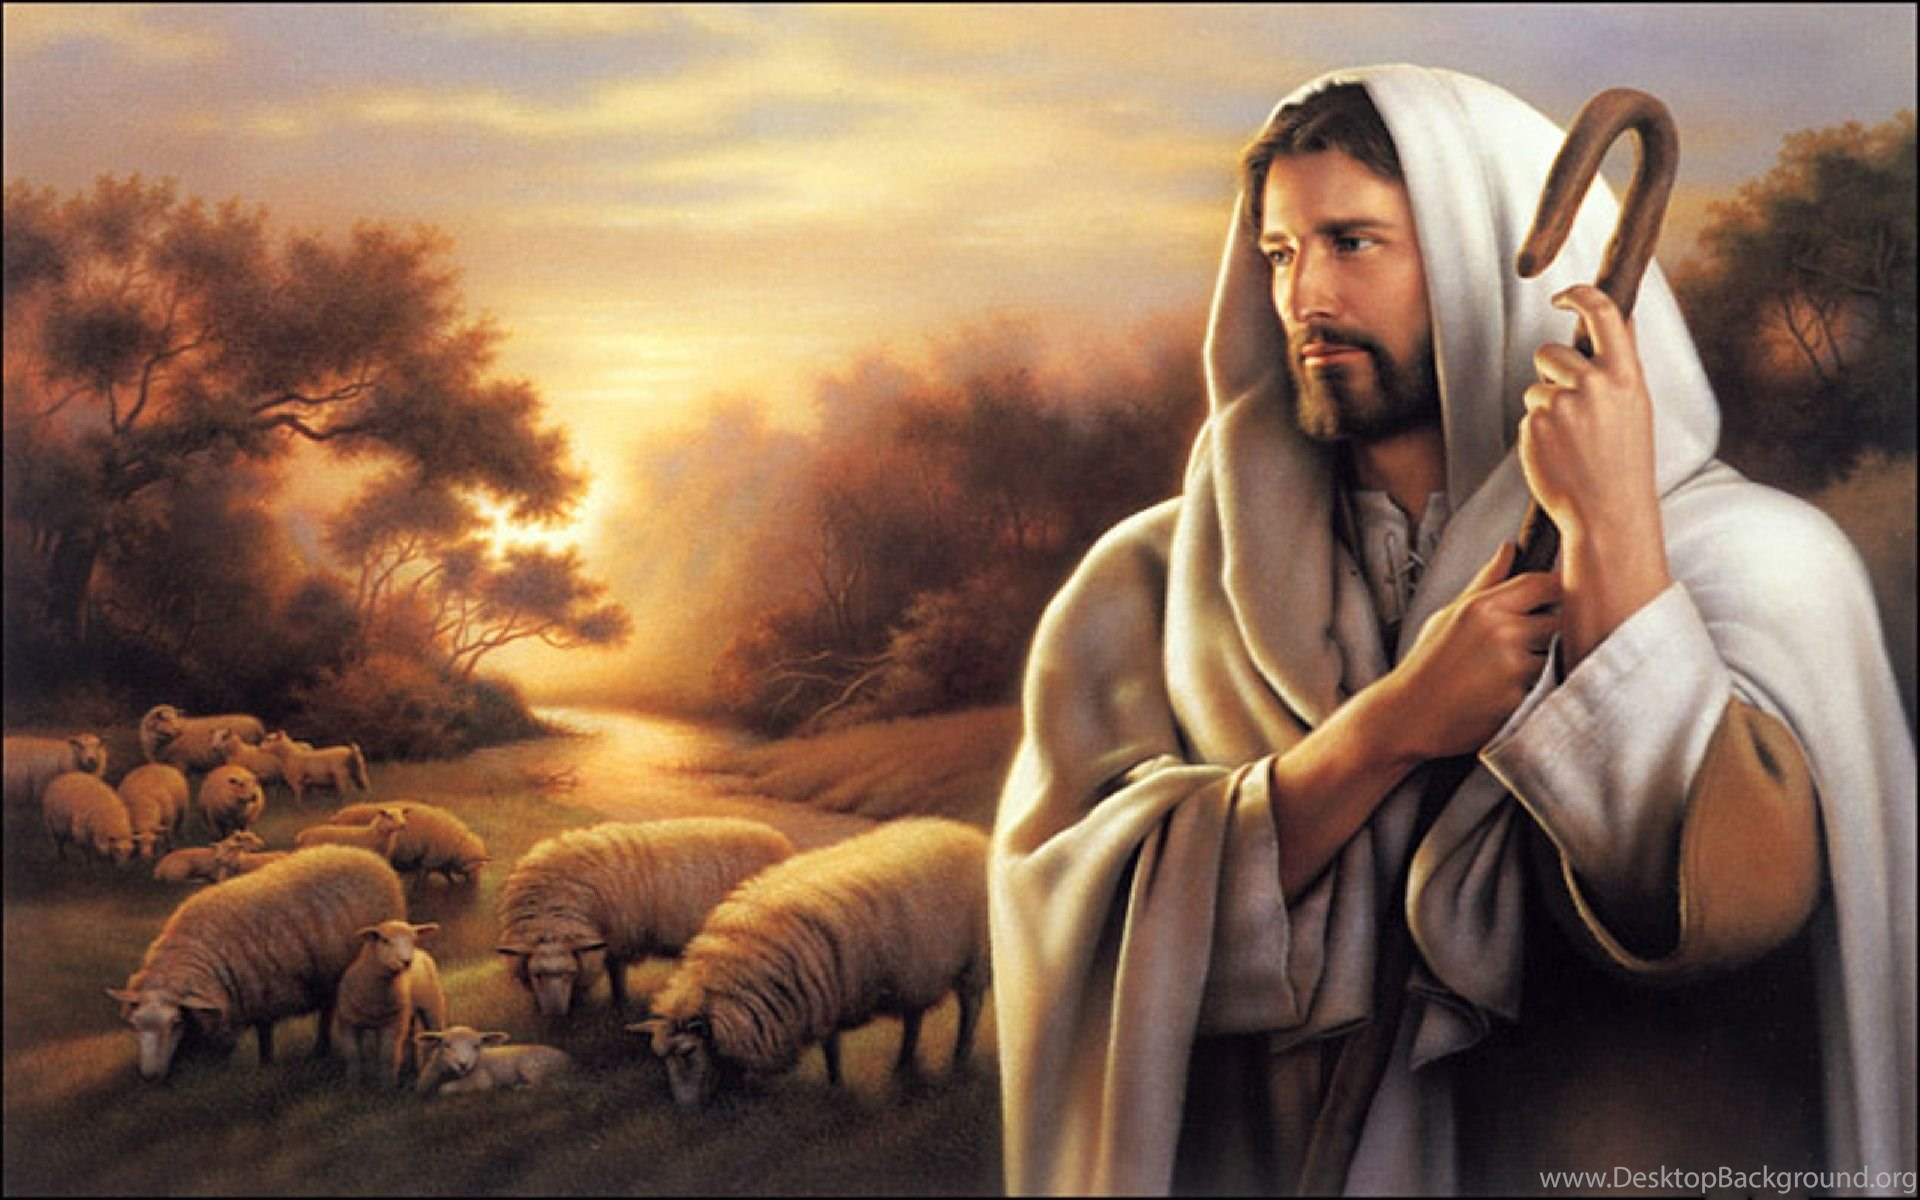 Jesus Christ Wallpapers Download Desktop Background